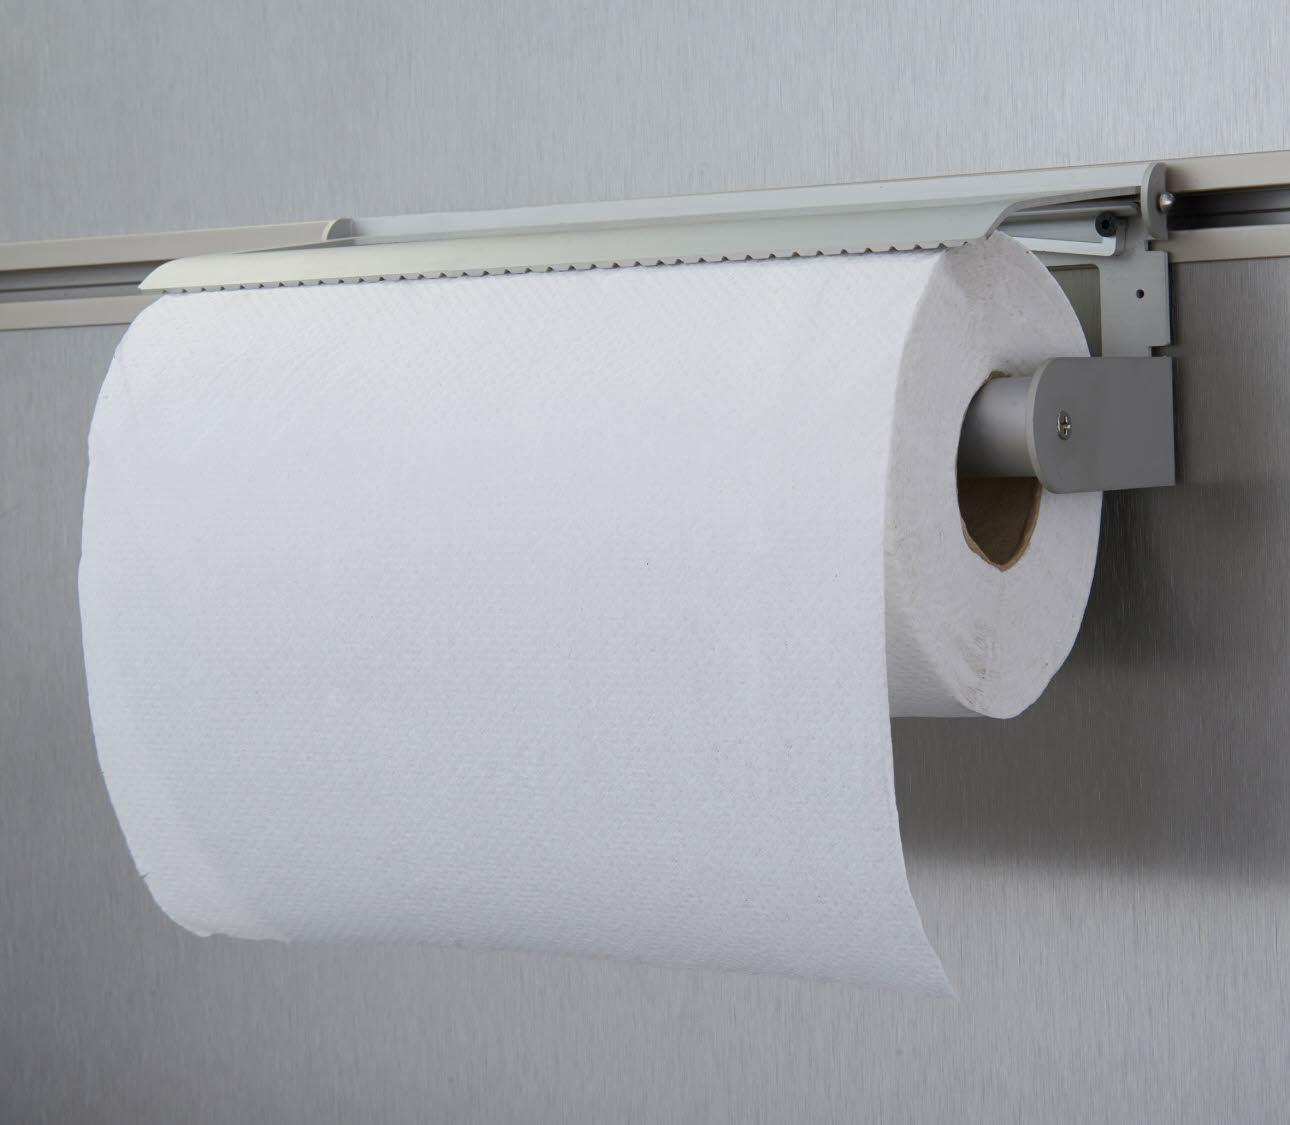 Paper towel holder - with paper towel